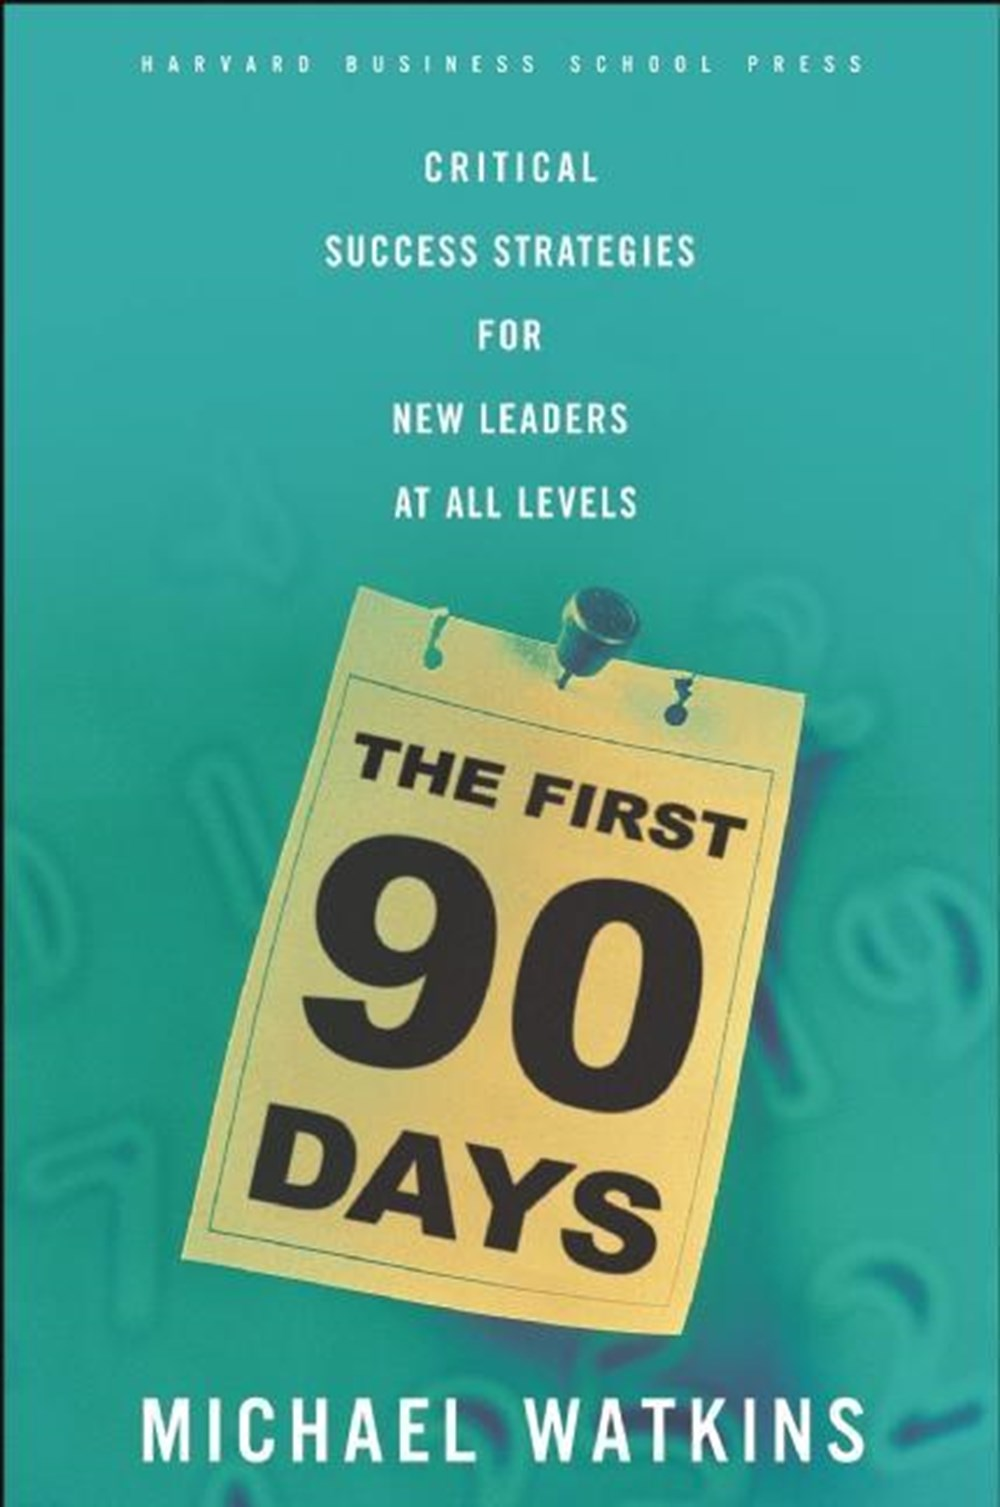 First 90 Days Critical Success Strategies for New Leaders at All Levels